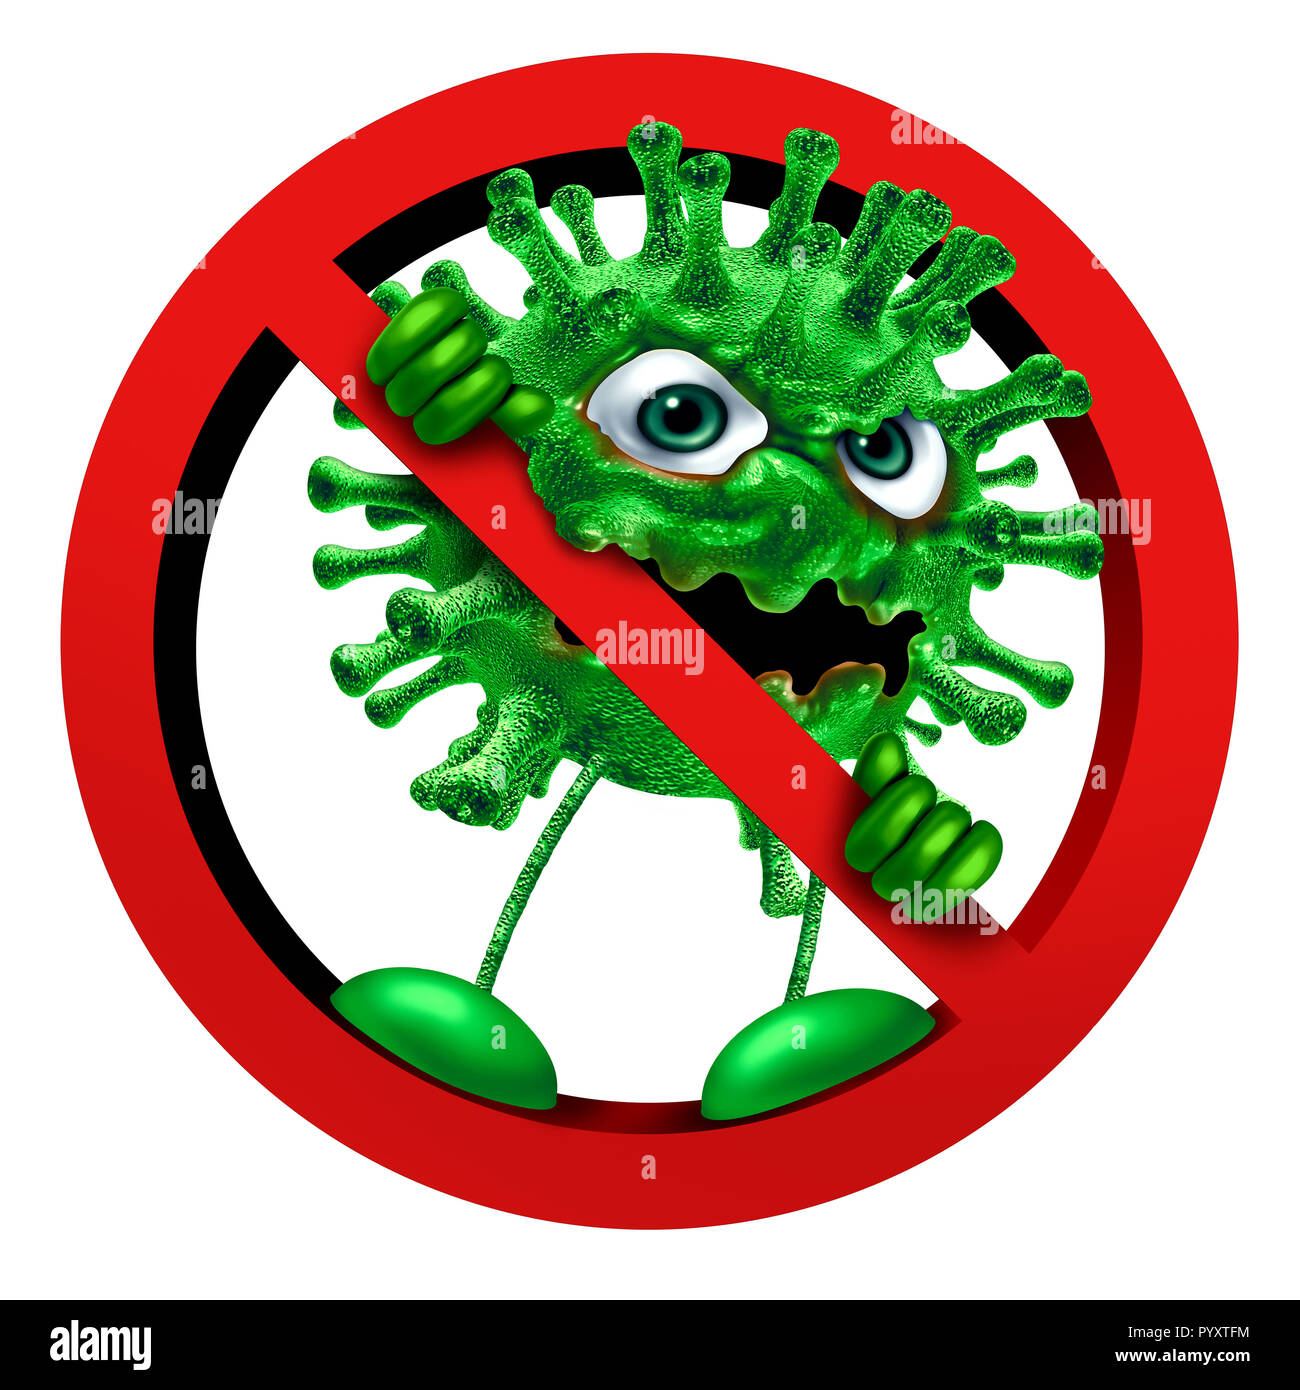 Stop virus sign immunity symbol as a pathogen character in a ban or banned icon as a vaccination or hygiene health idea as a 3D render. - Stock Image